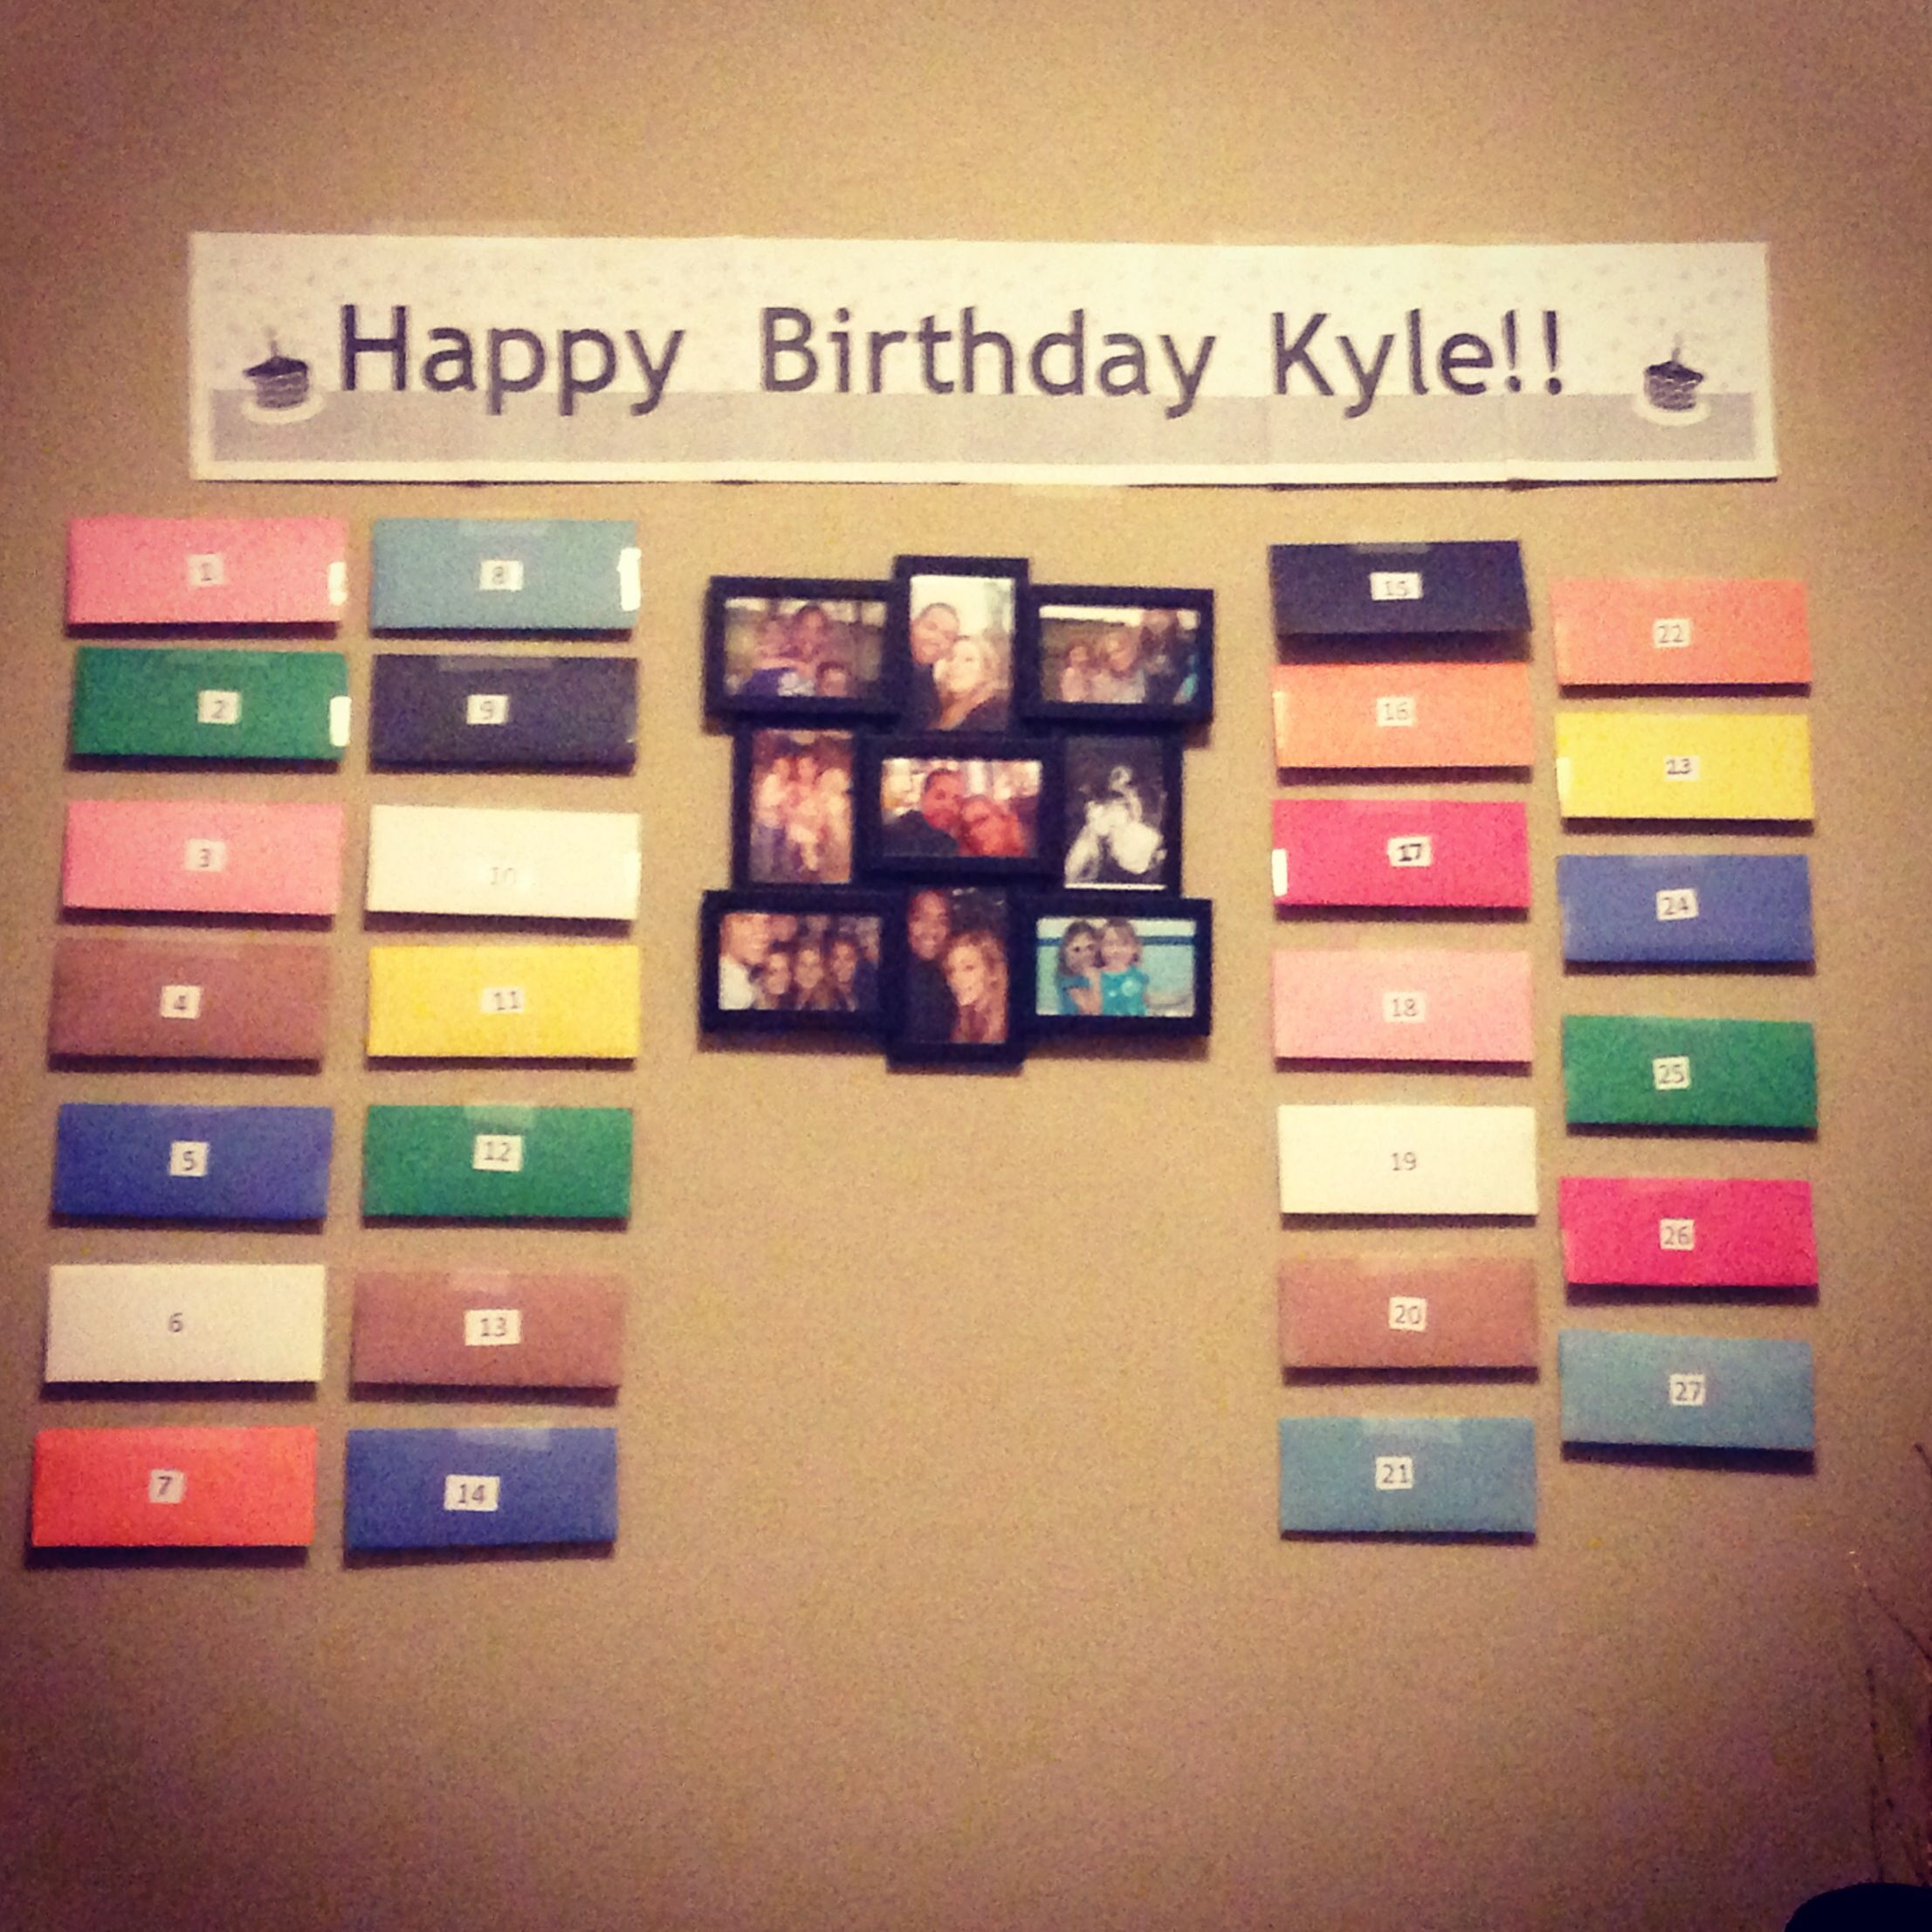 Happy Birthday Letters To Kyle From All His Friends And